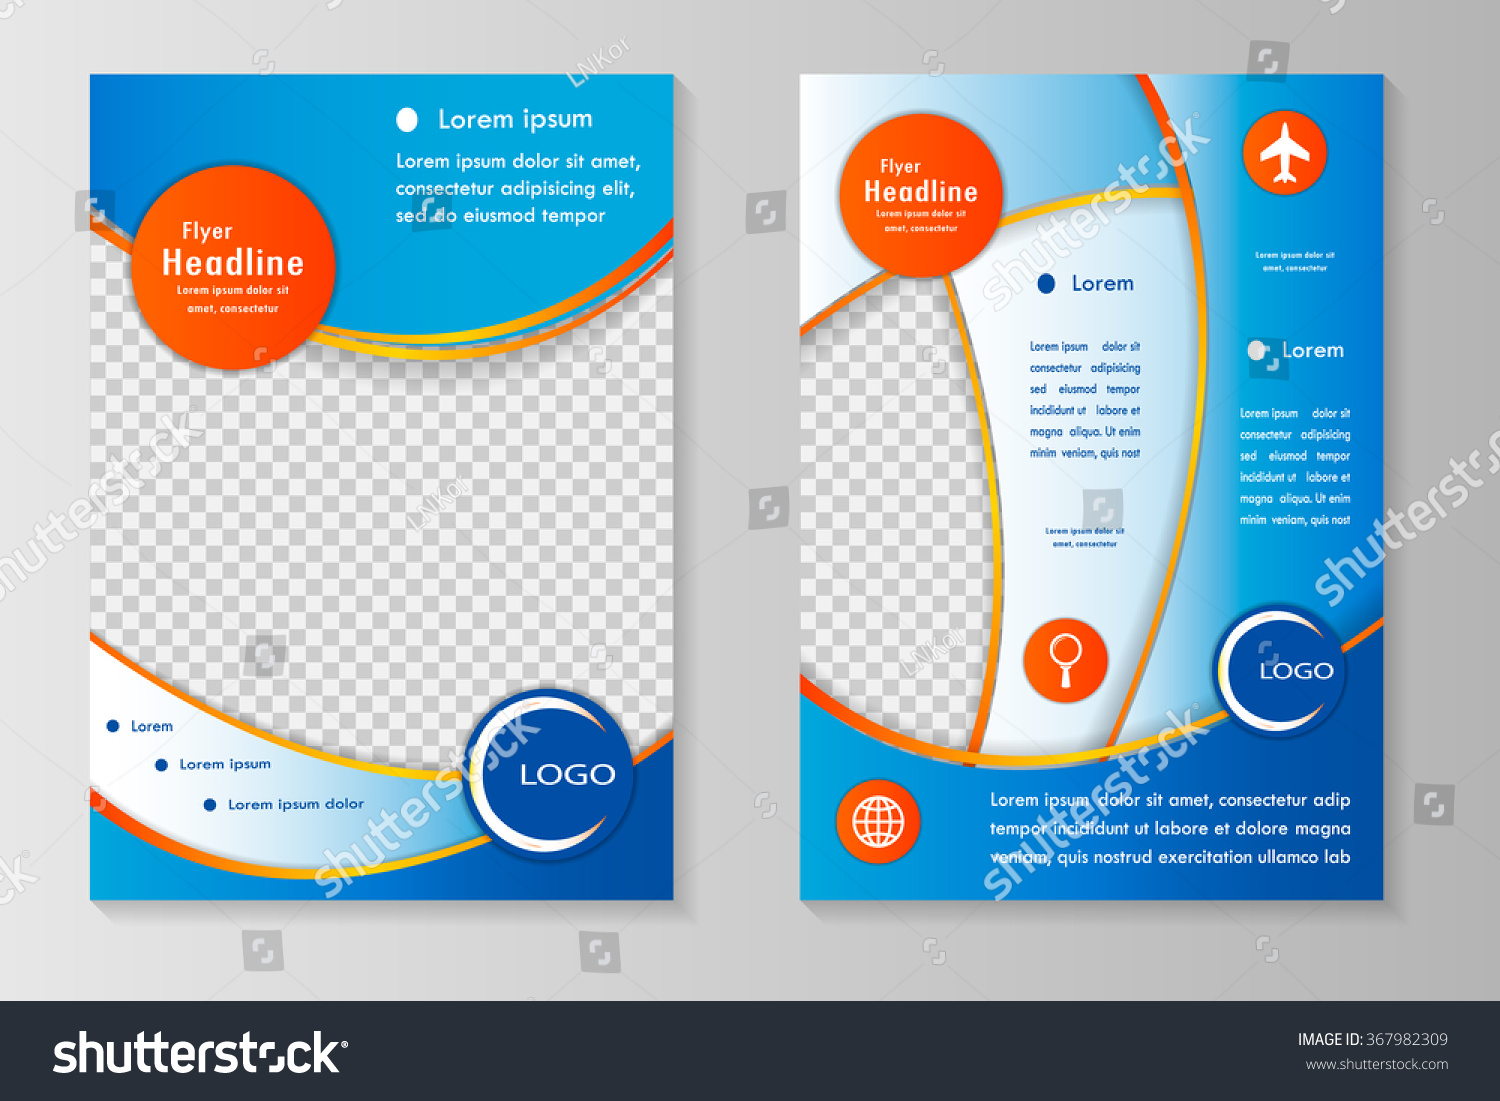 royalty vector flyer template design front 367982309 vector flyer template design front page and back page business brochure or cover